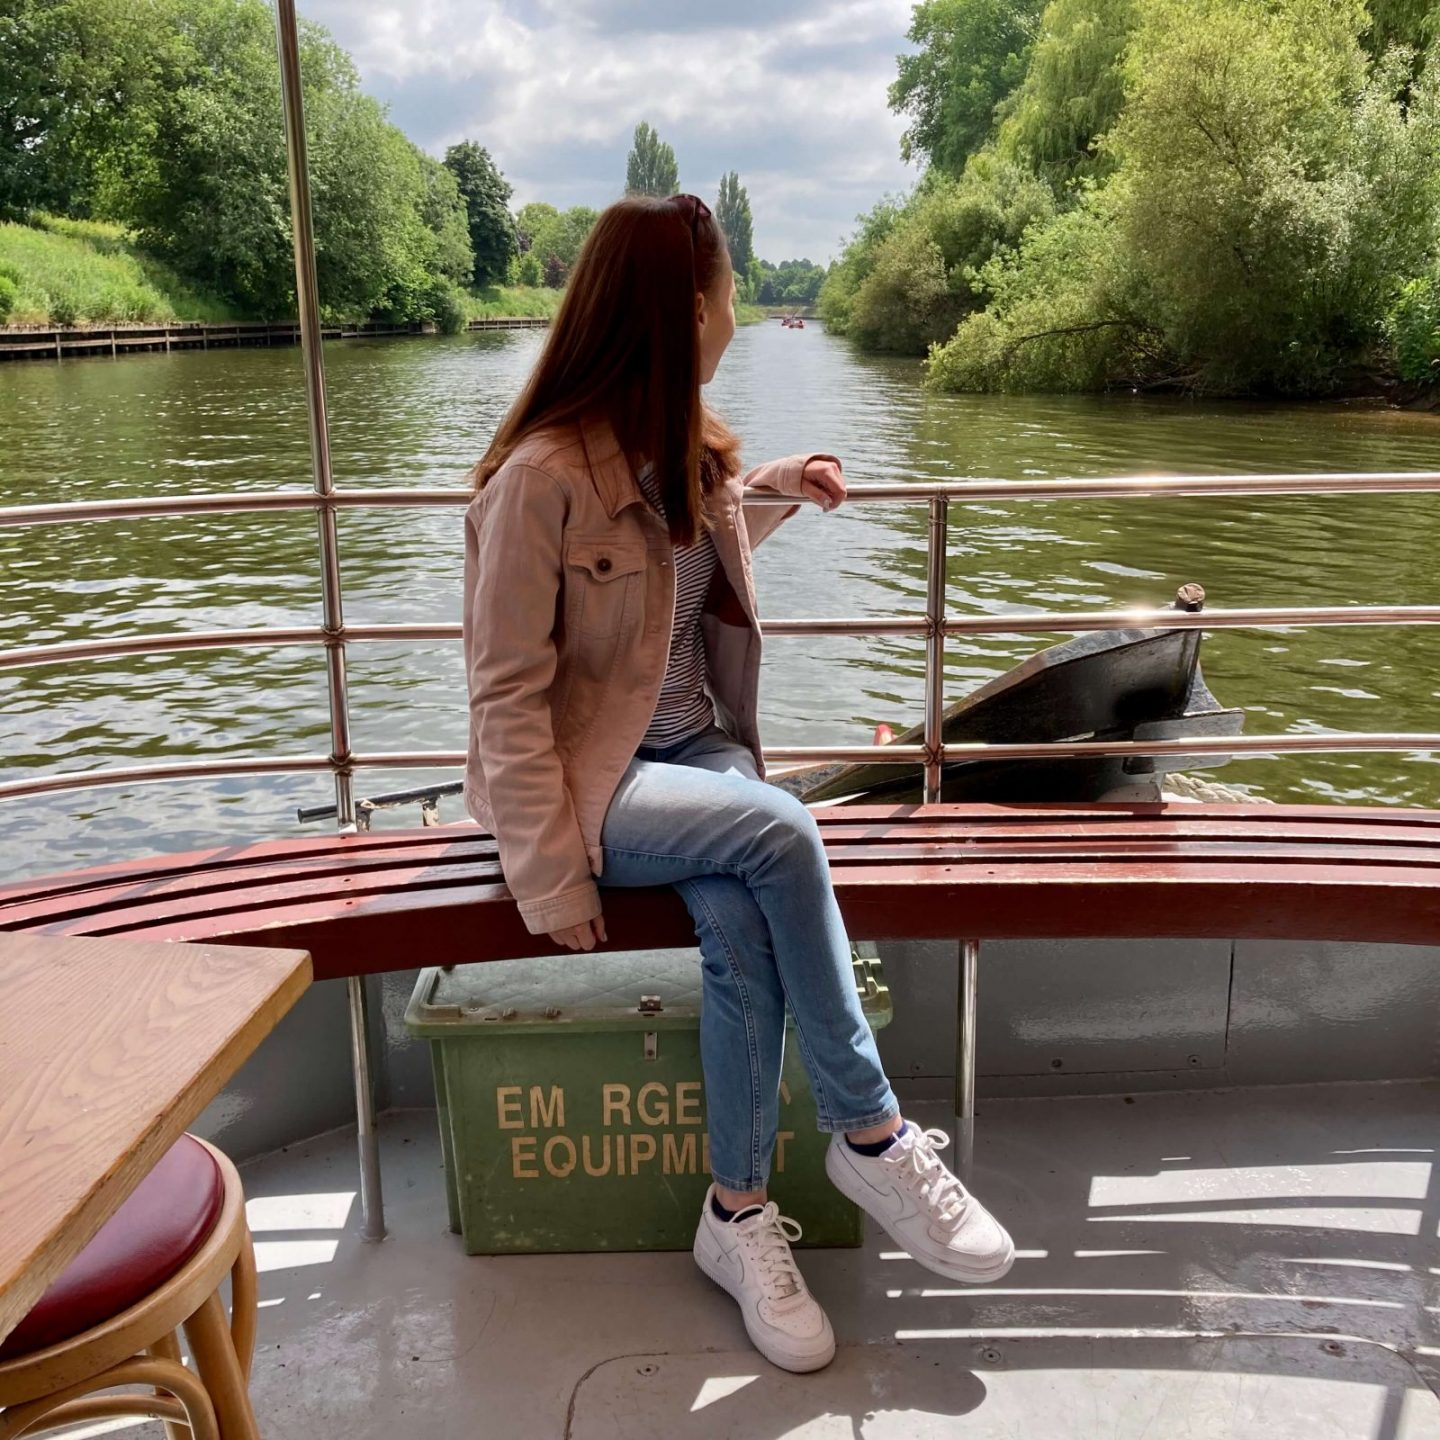 pippa sat on bench onboard boat that's out on the river, one hand on the rails and looking behind her. pippa is wearing a light pink denim jacket, blue jeans and white trainers.